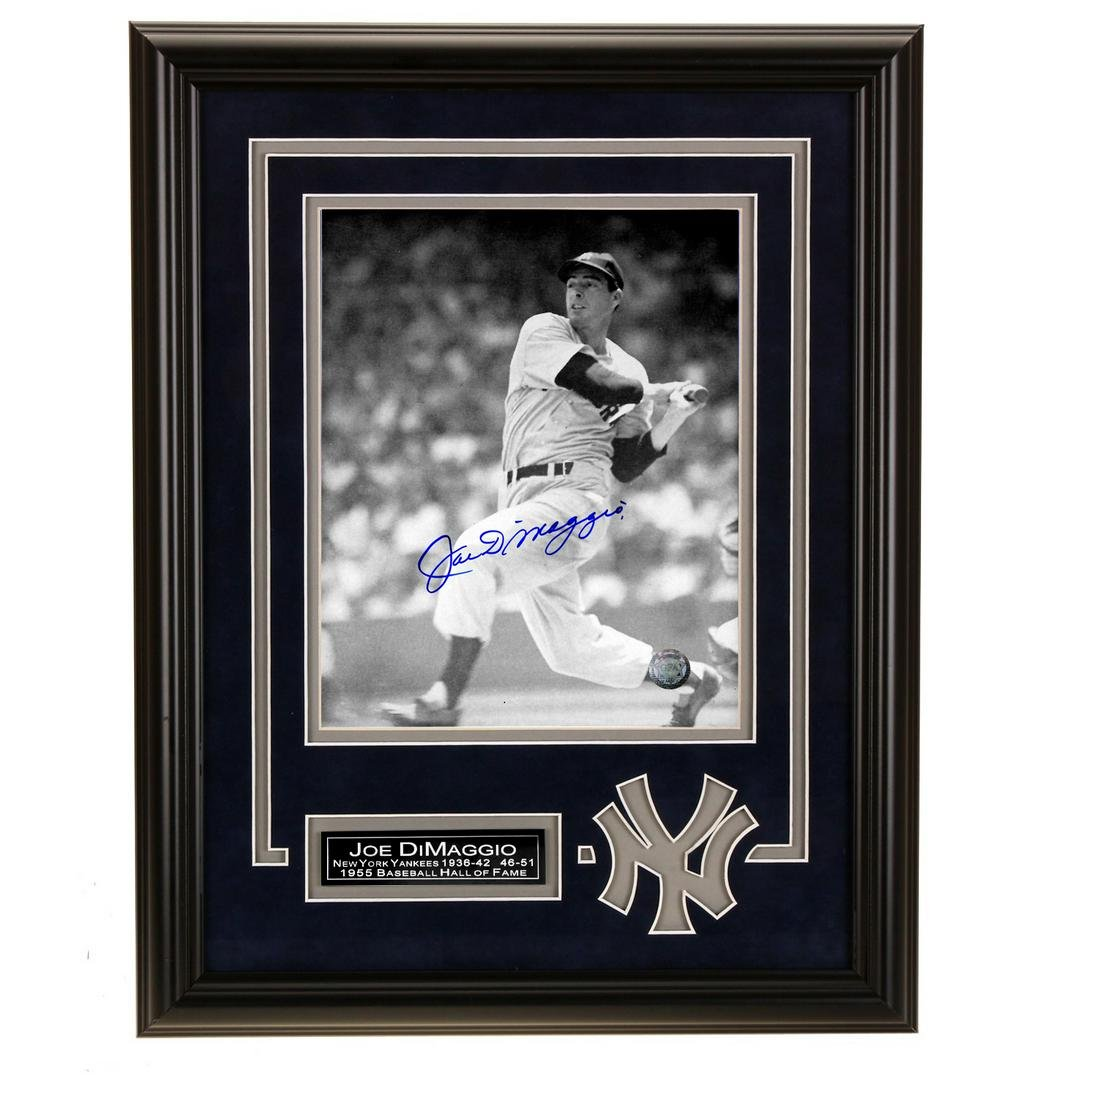 Joe DiMaggio New York Yankees 12x16 autograph GFA